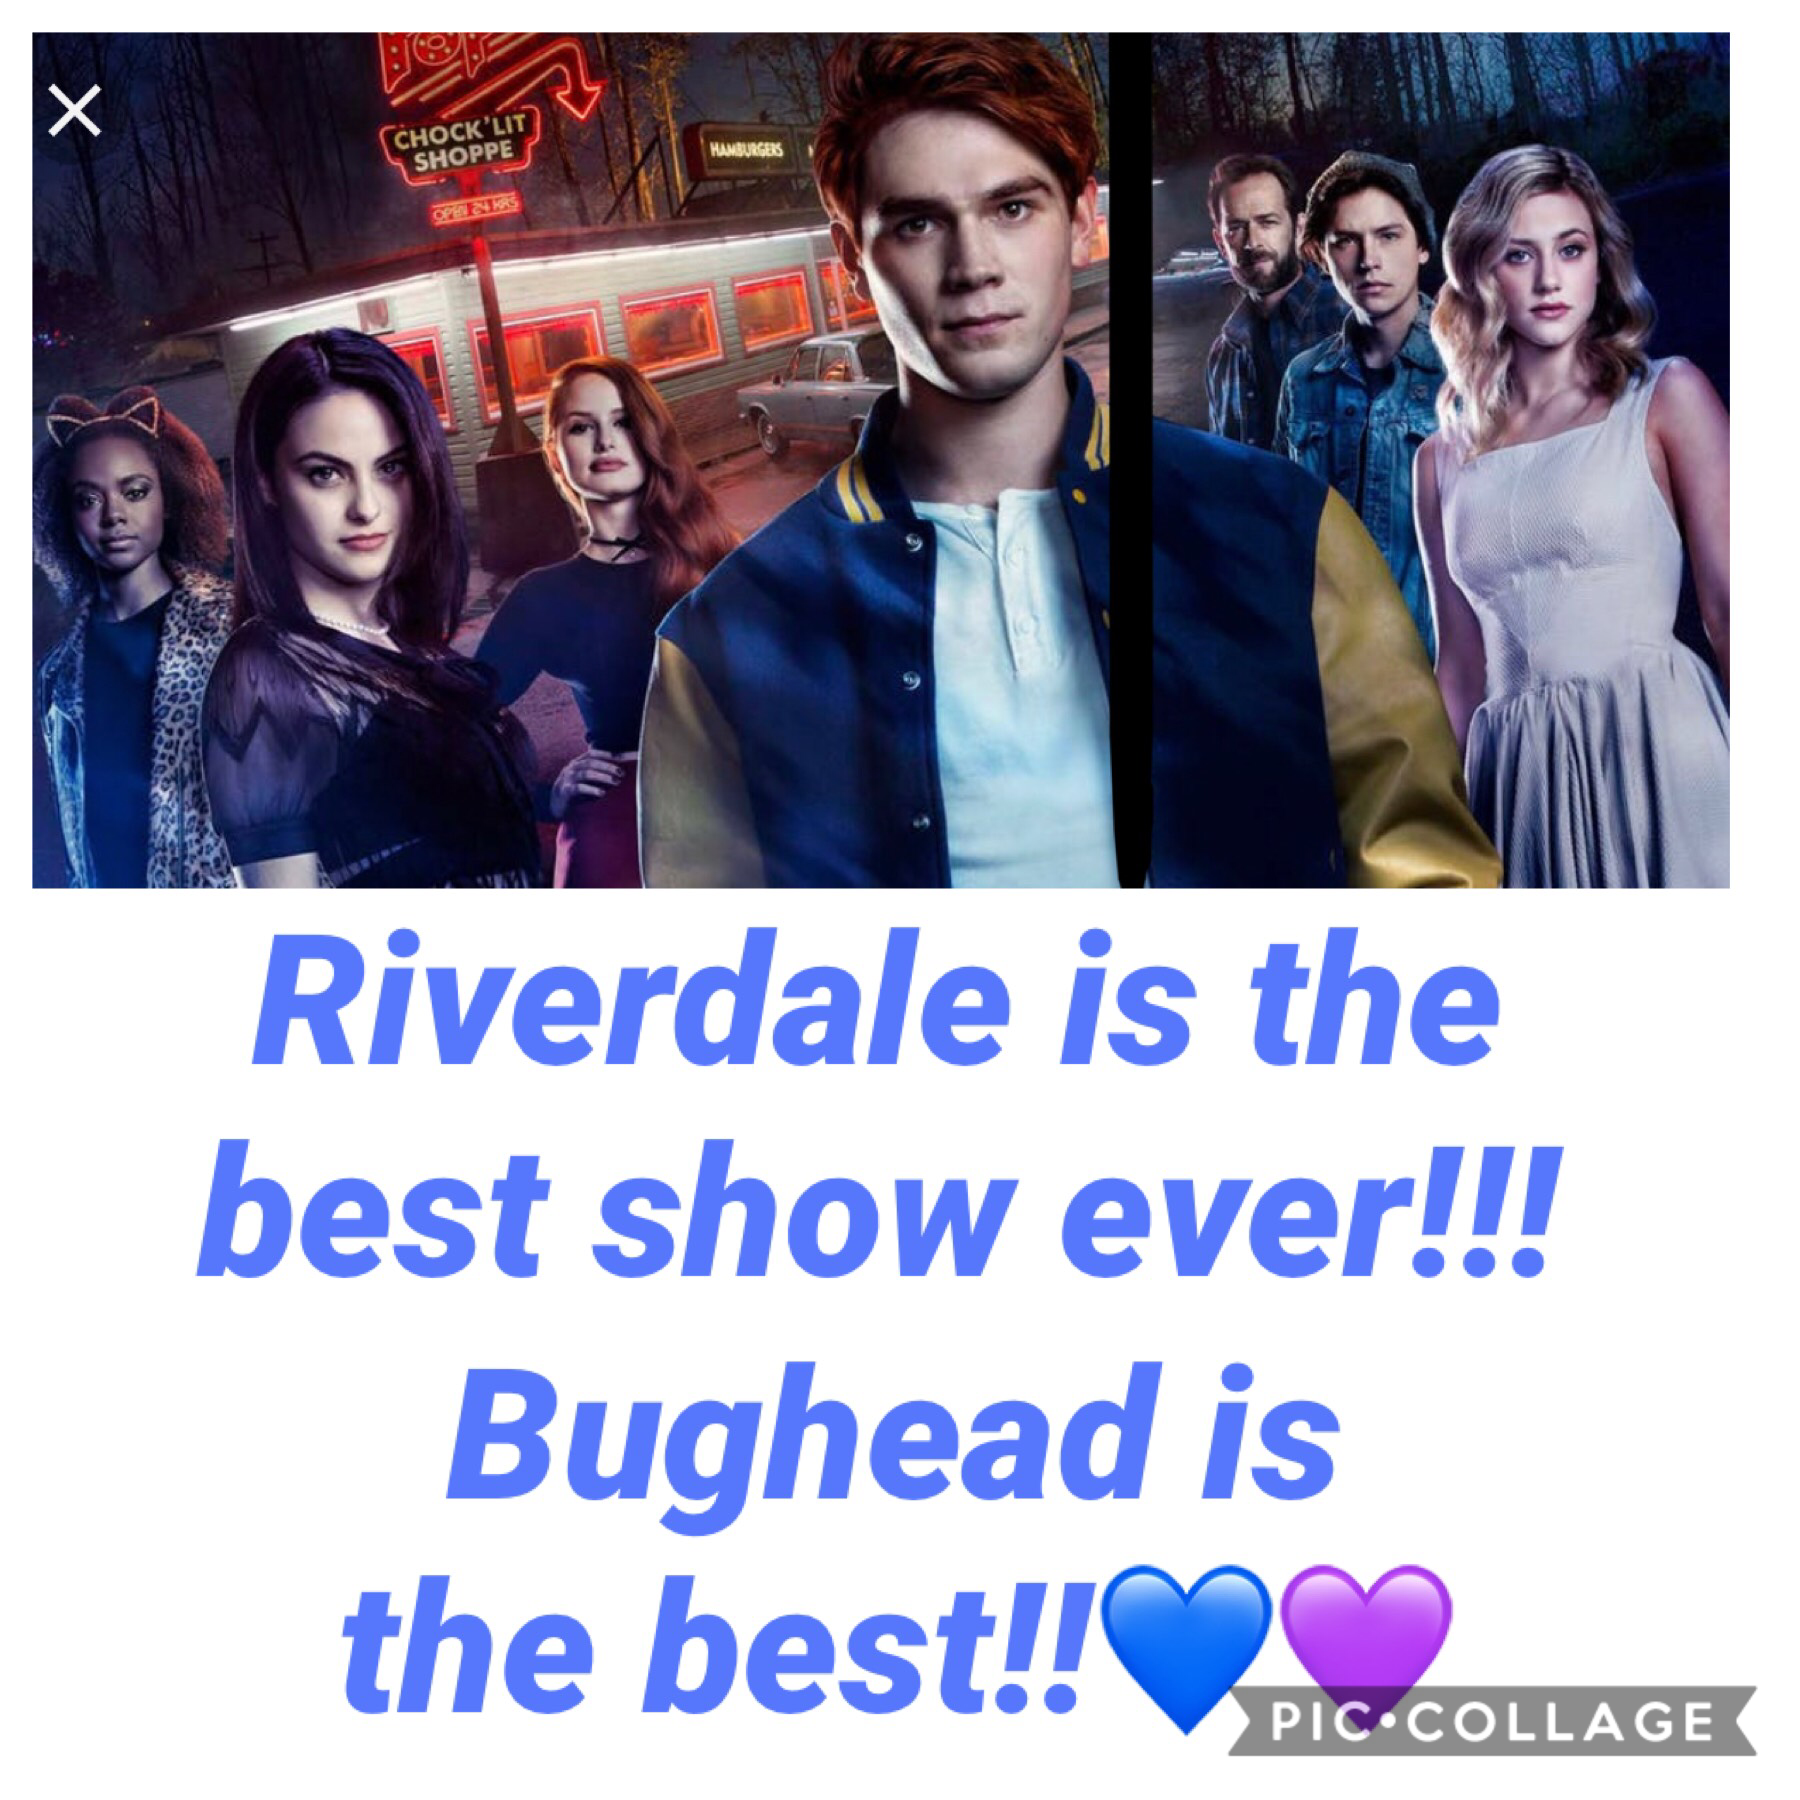 Riverdale is the best show i have ever seen!!💜💙 Check out my account and follow me!! And like if u think bughead is the best couple ever!! GO TEAM BUGHEAD!!!!!!!💜💙💜💙💜💙♥️